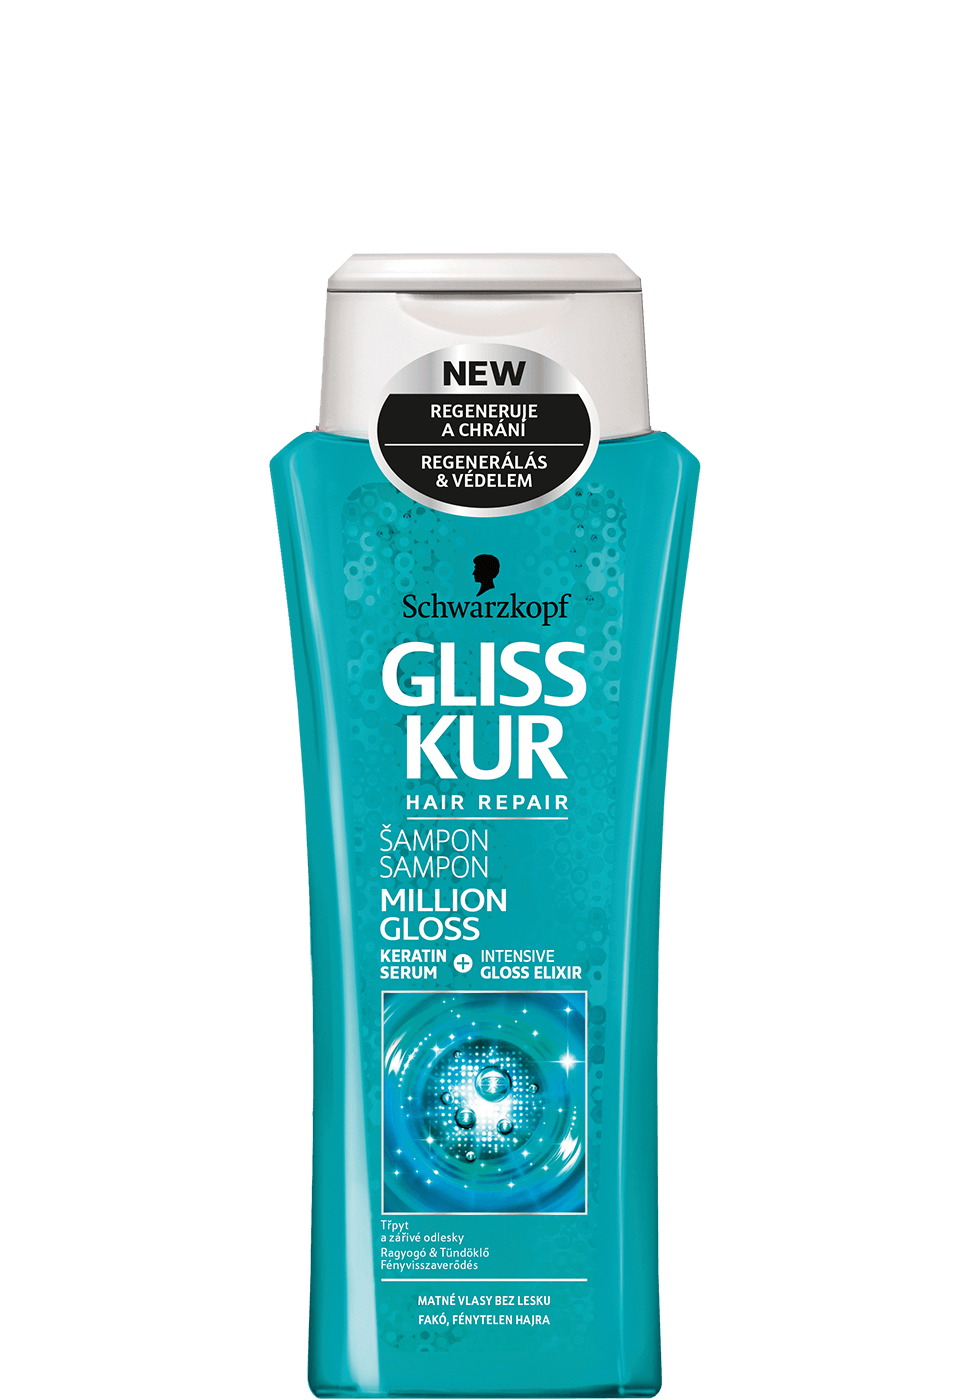 glisskur_de_million_gloss_shampoo_970x1400